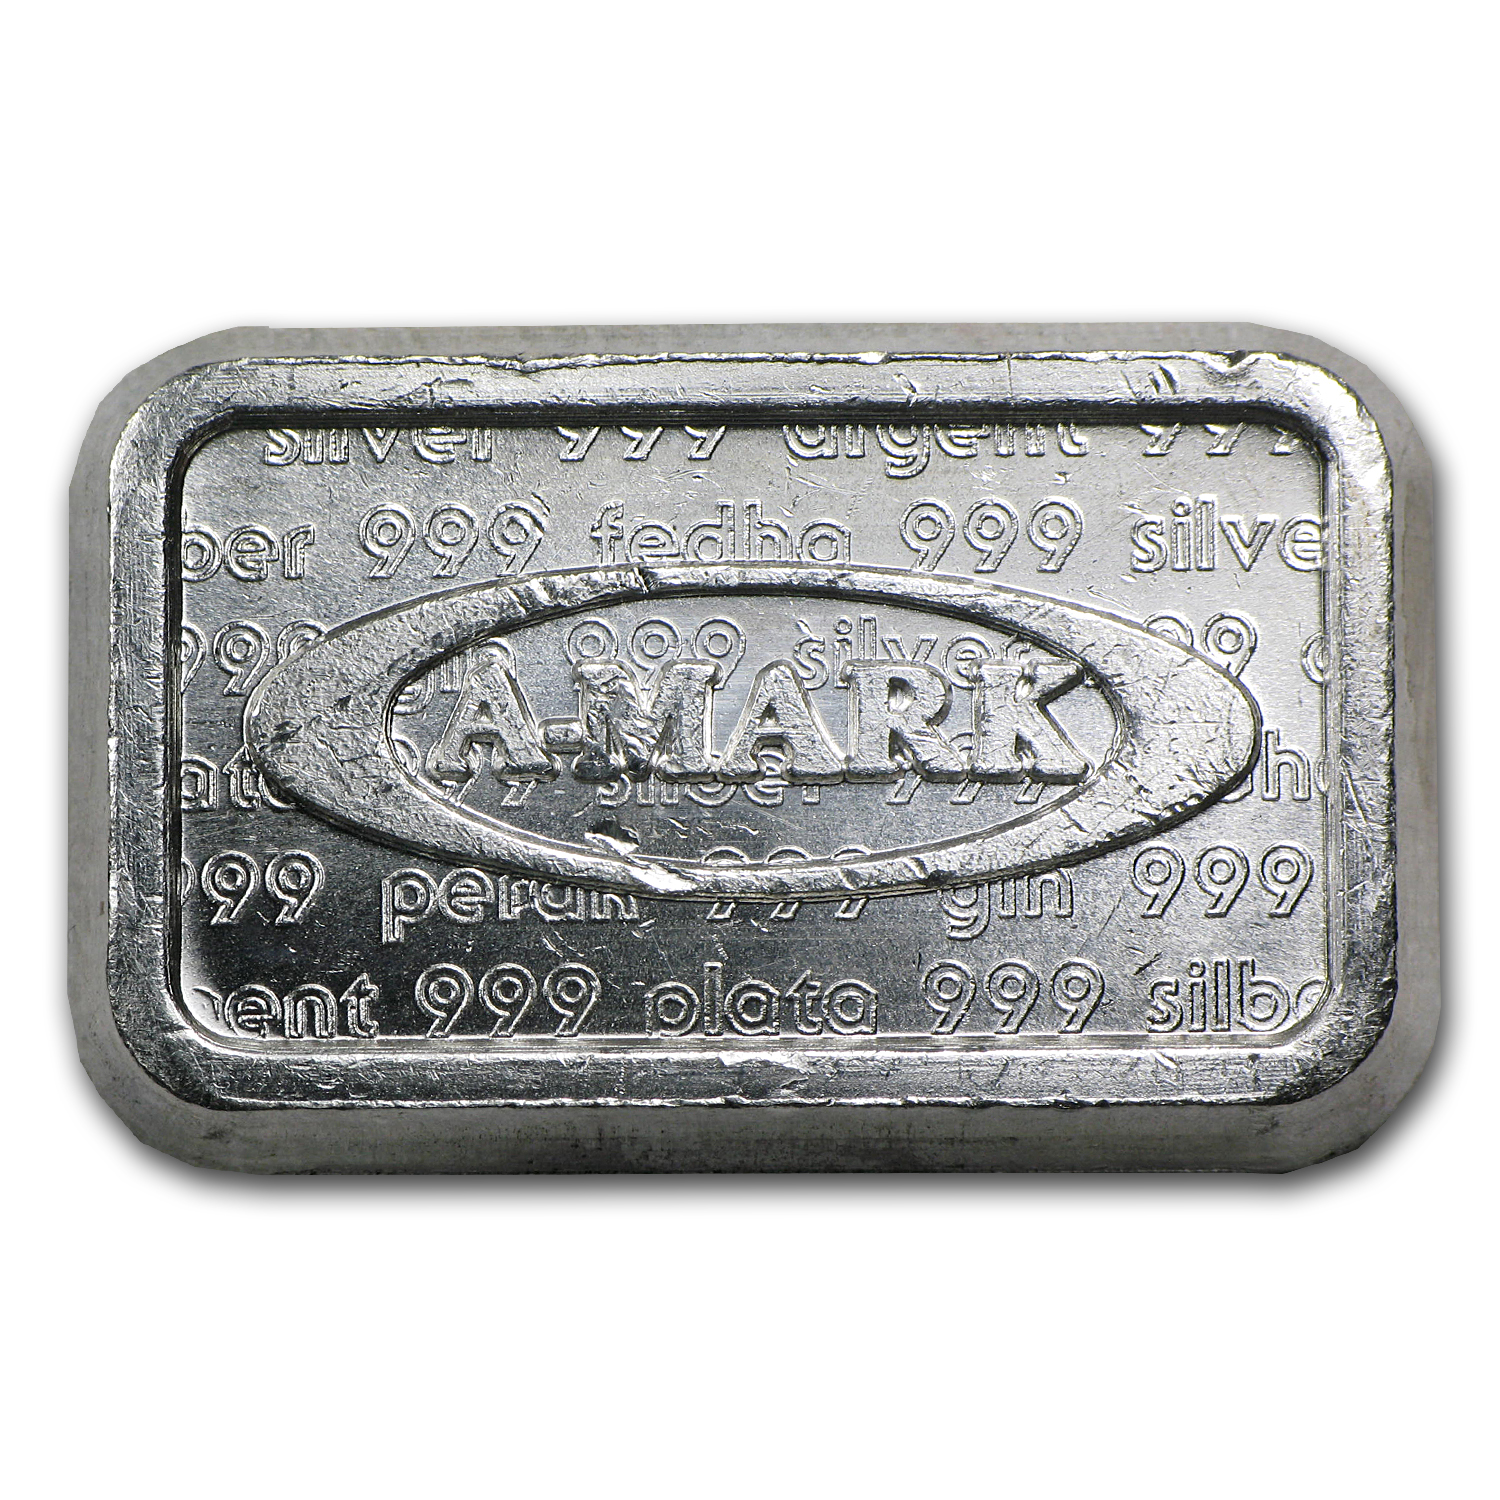 1 oz Silver Bar - A-Mark (U.S.V.I. Ingot Co.)